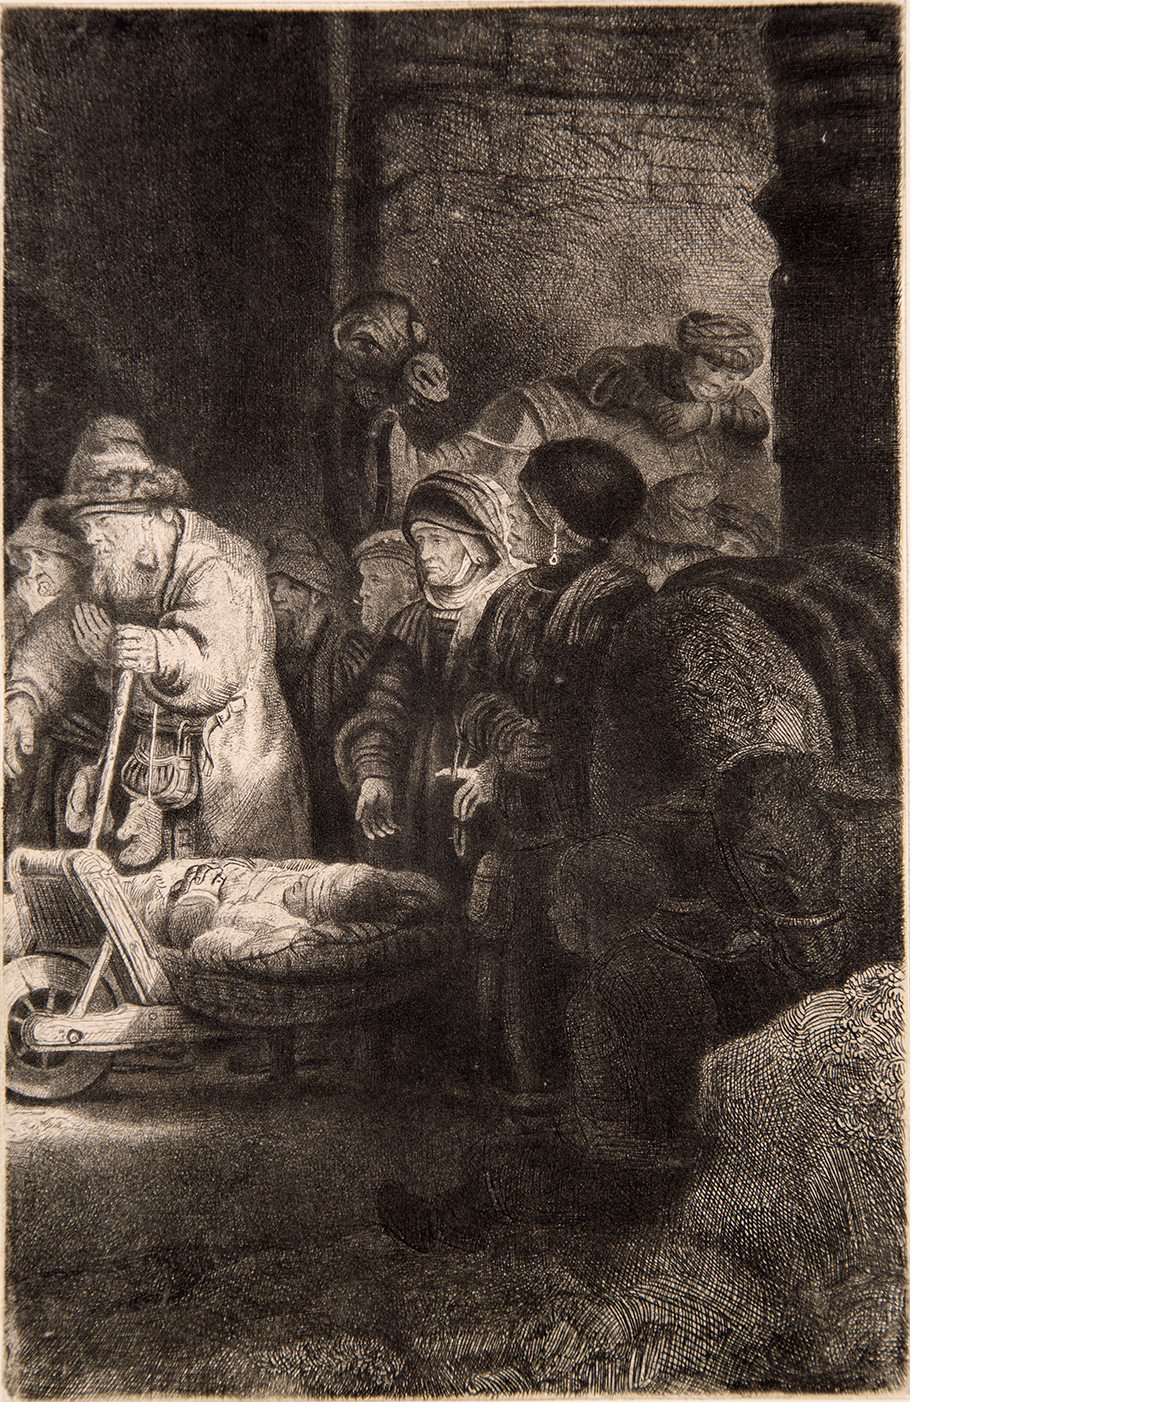 Rembrandt's etching: Christ Preaching